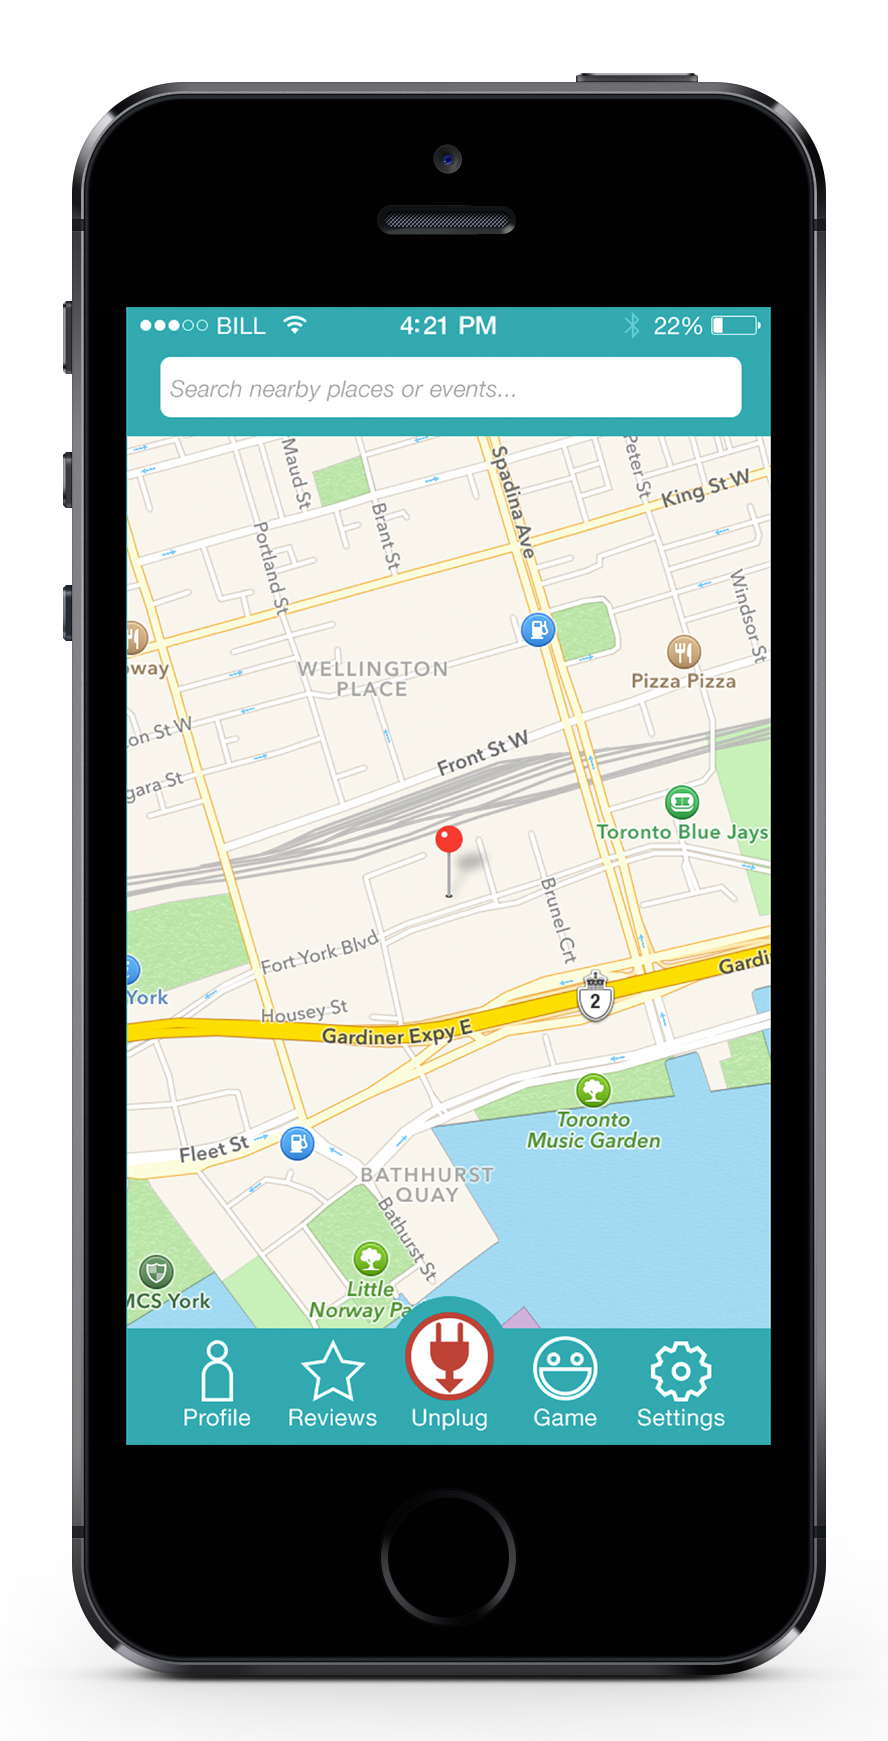 The app uses geolocation and what it knows about the user to recommend places and activities to go to.